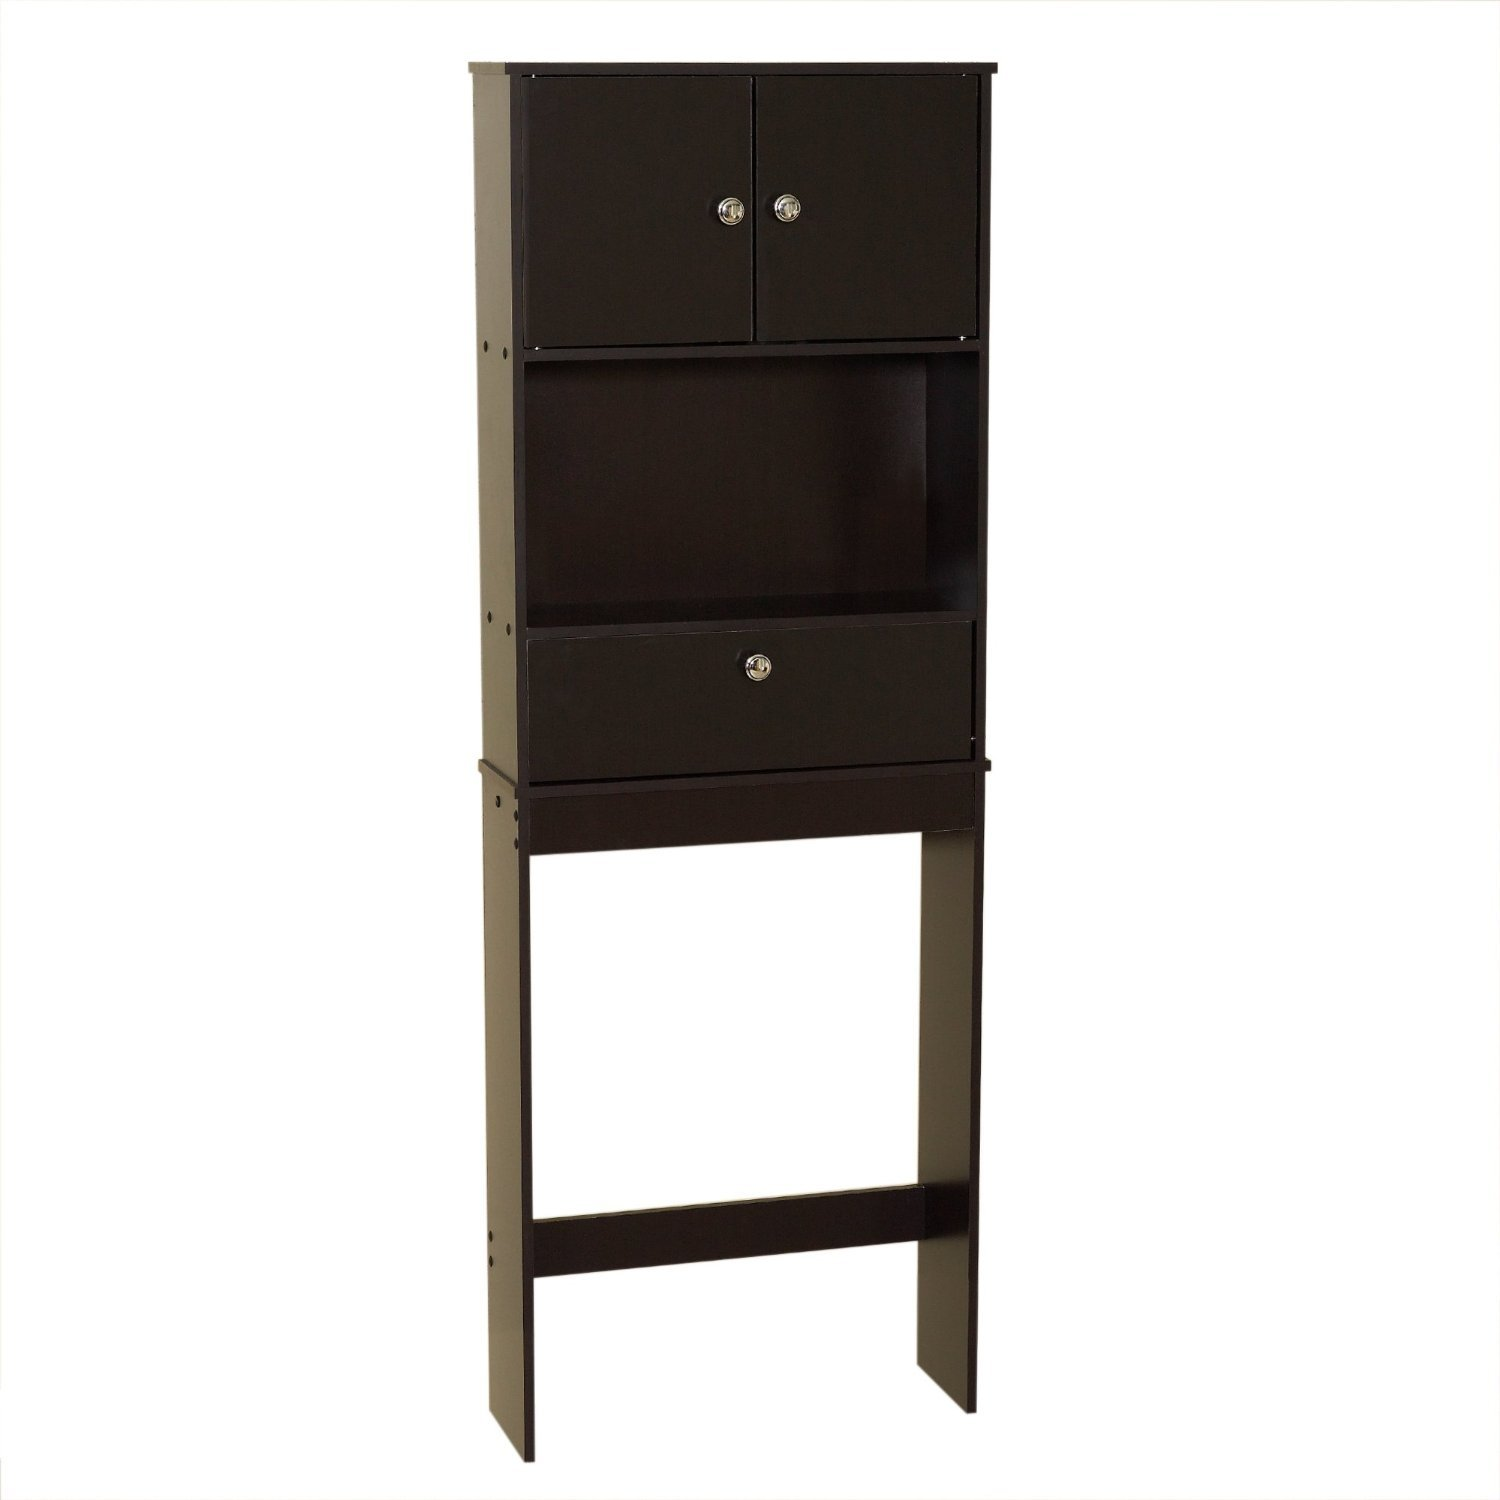 Over the Toilet Bathroom Space Saver Cabinet in Espresso Fast Furnishing